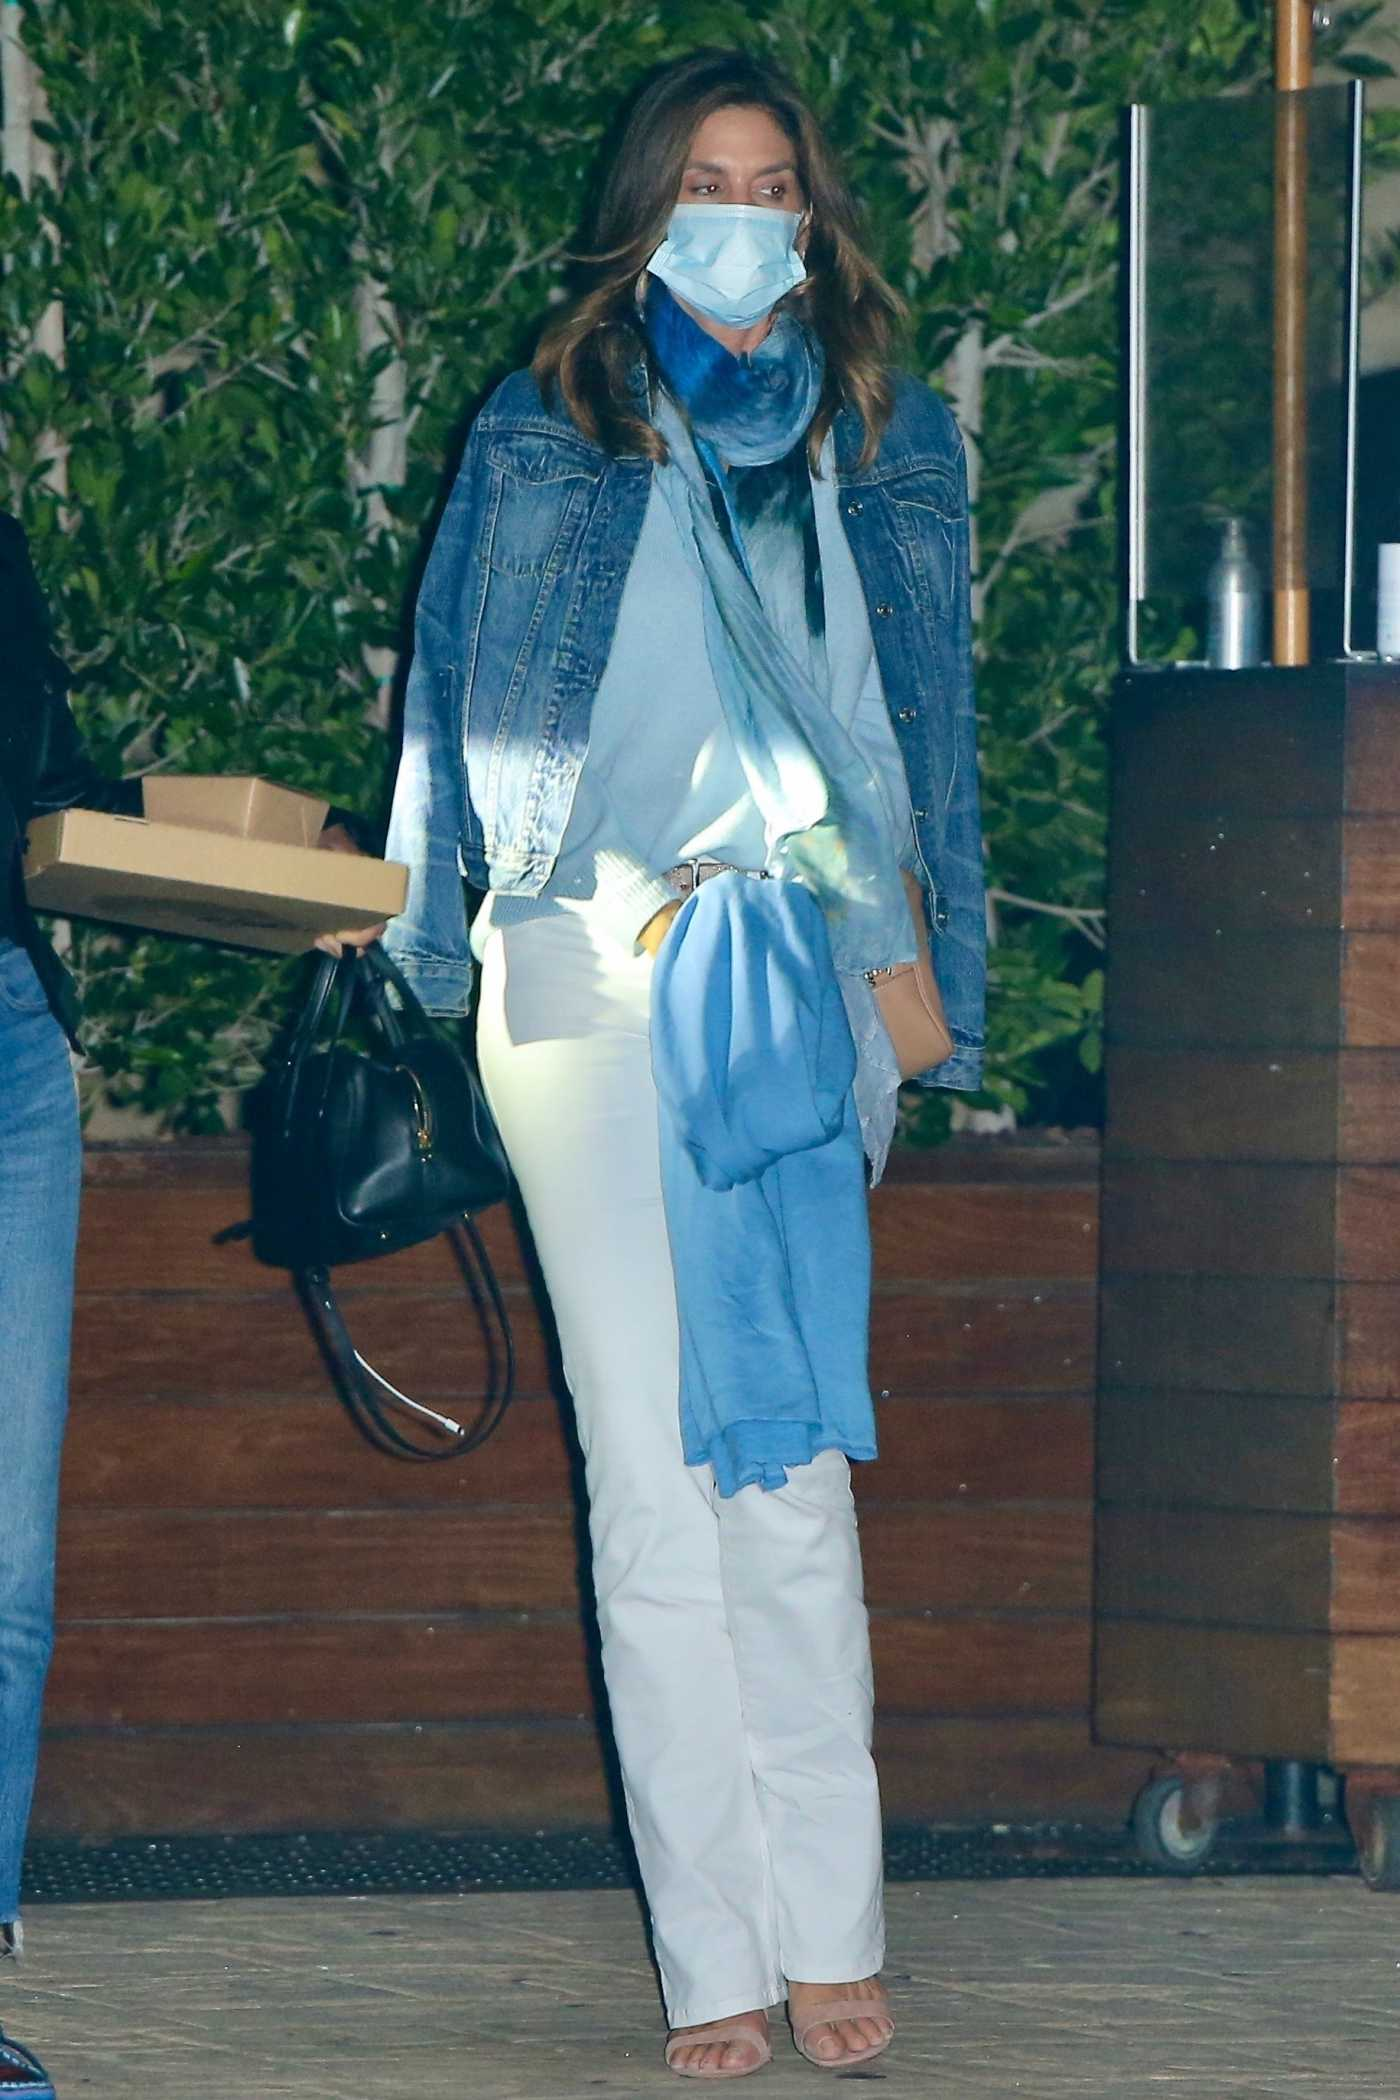 Cindy Crawford in a Protective Mask Leaves Dinner at SoHo House in New York 07/29/2020